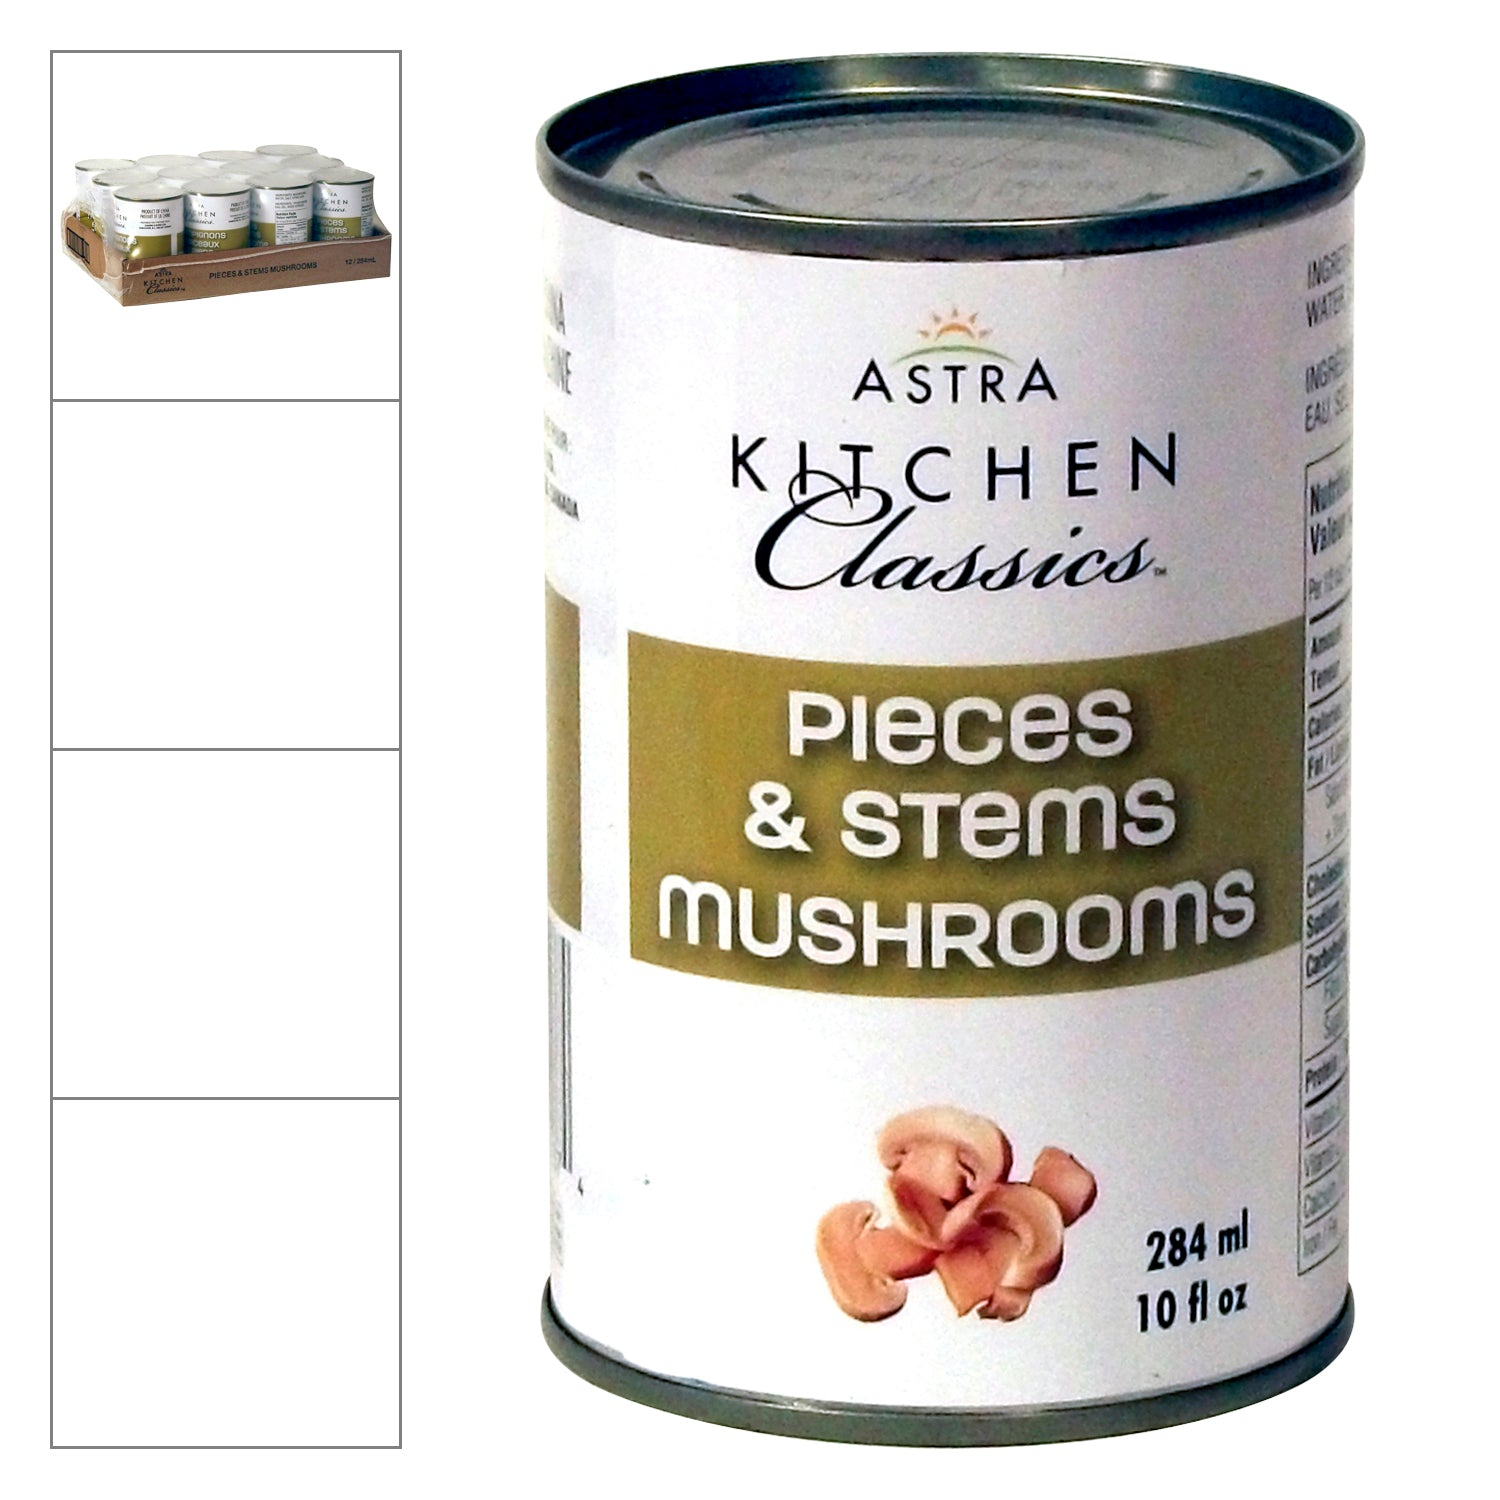 AKC Mushroom Stems & Pieces 284 ml - 12 Pack [$1.37/can]